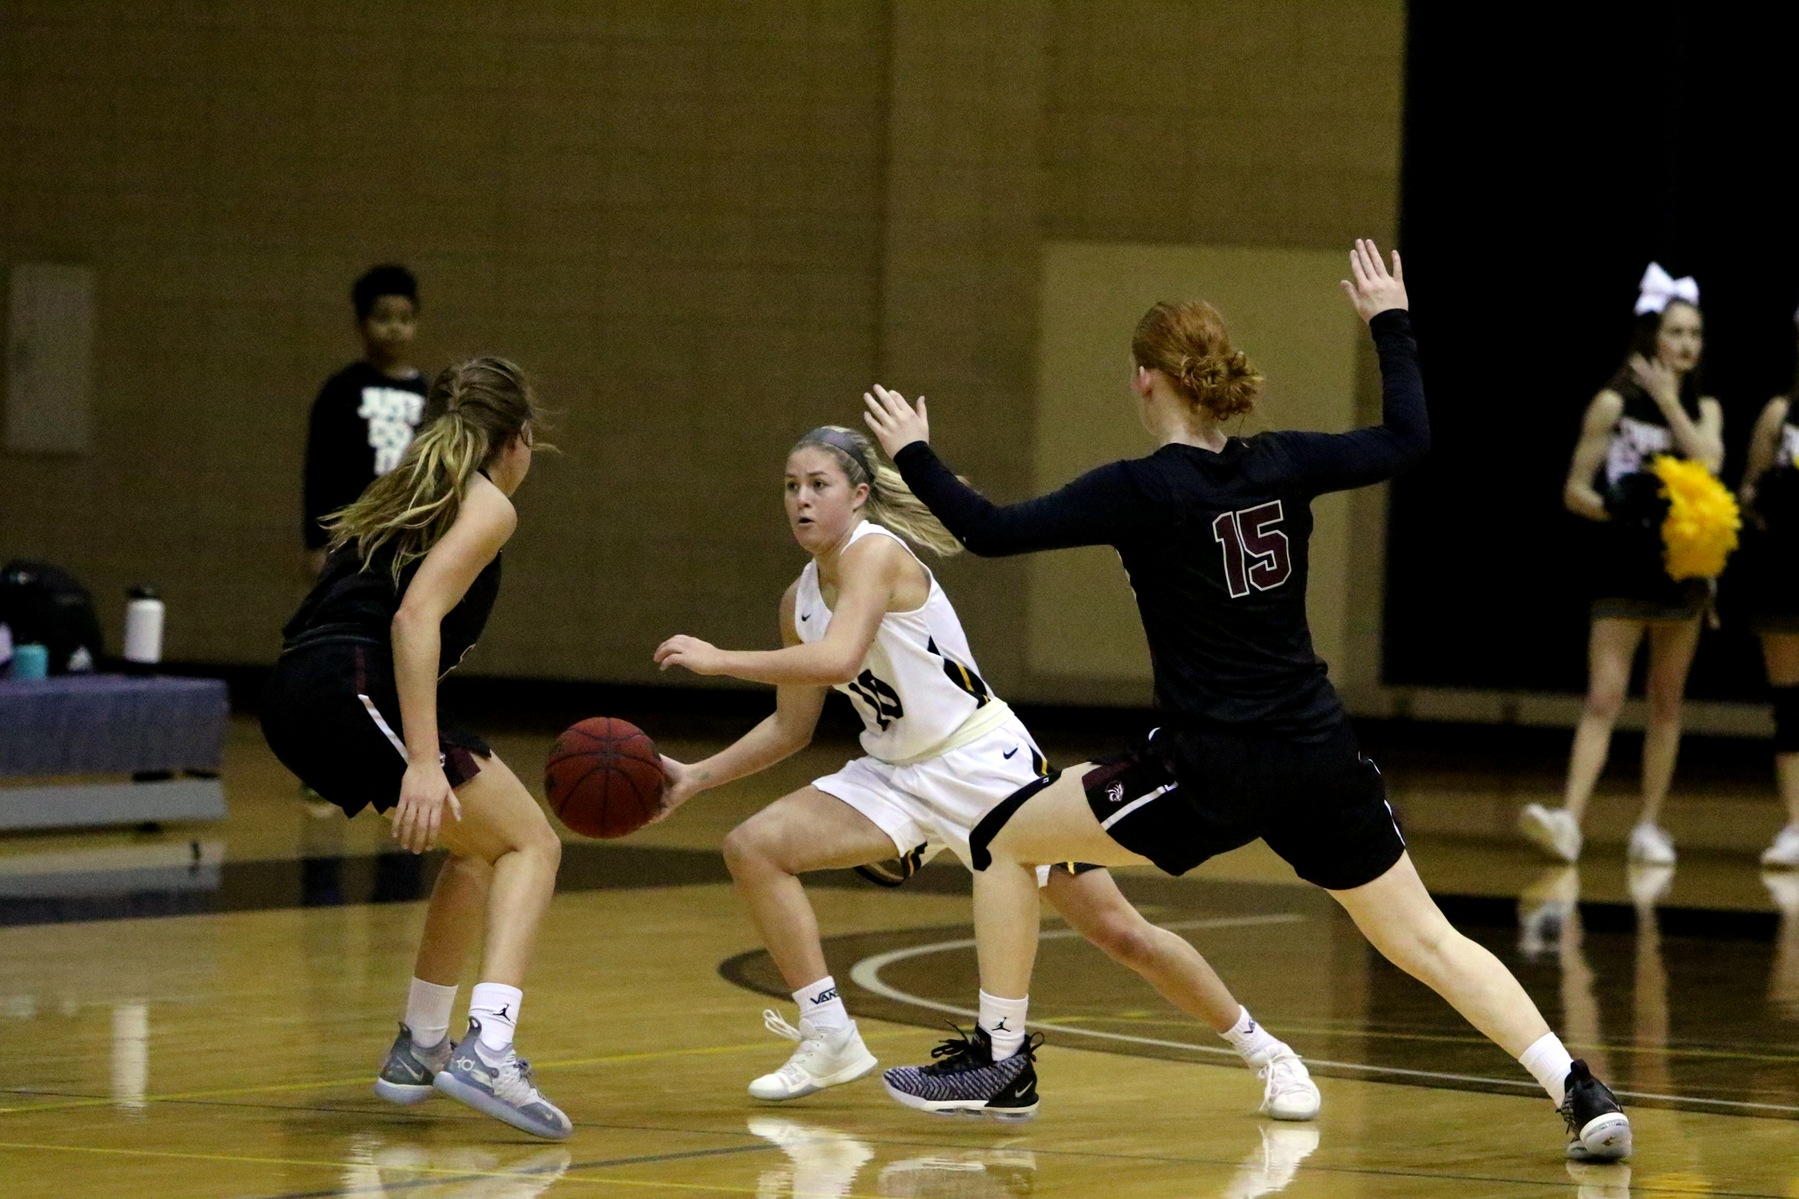 Women's Basketball Loses to Trinity at Home